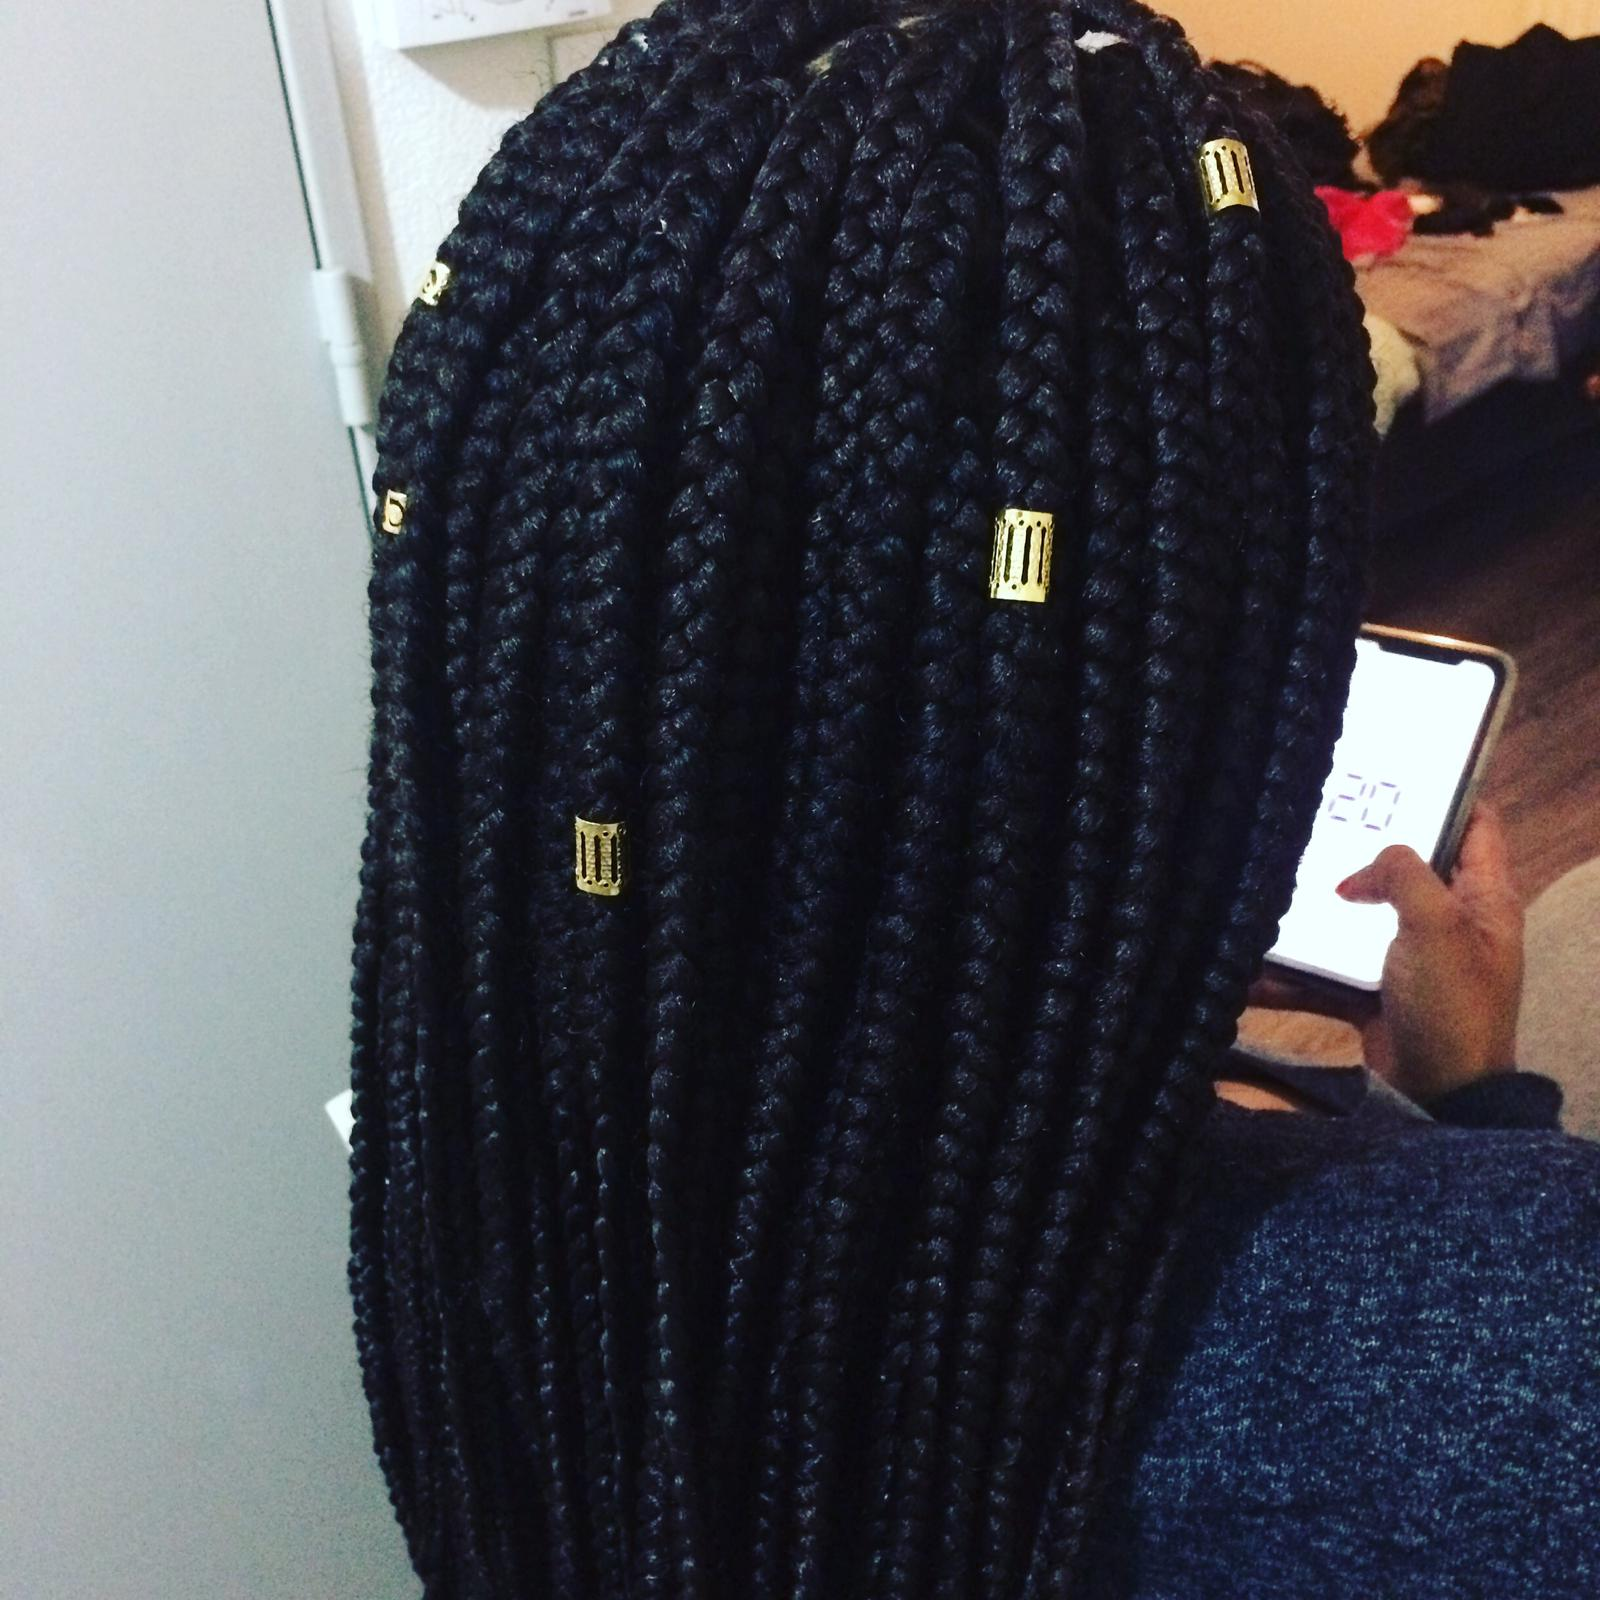 salon de coiffure afro tresse tresses box braids crochet braids vanilles tissages paris 75 77 78 91 92 93 94 95 BADYZEDM